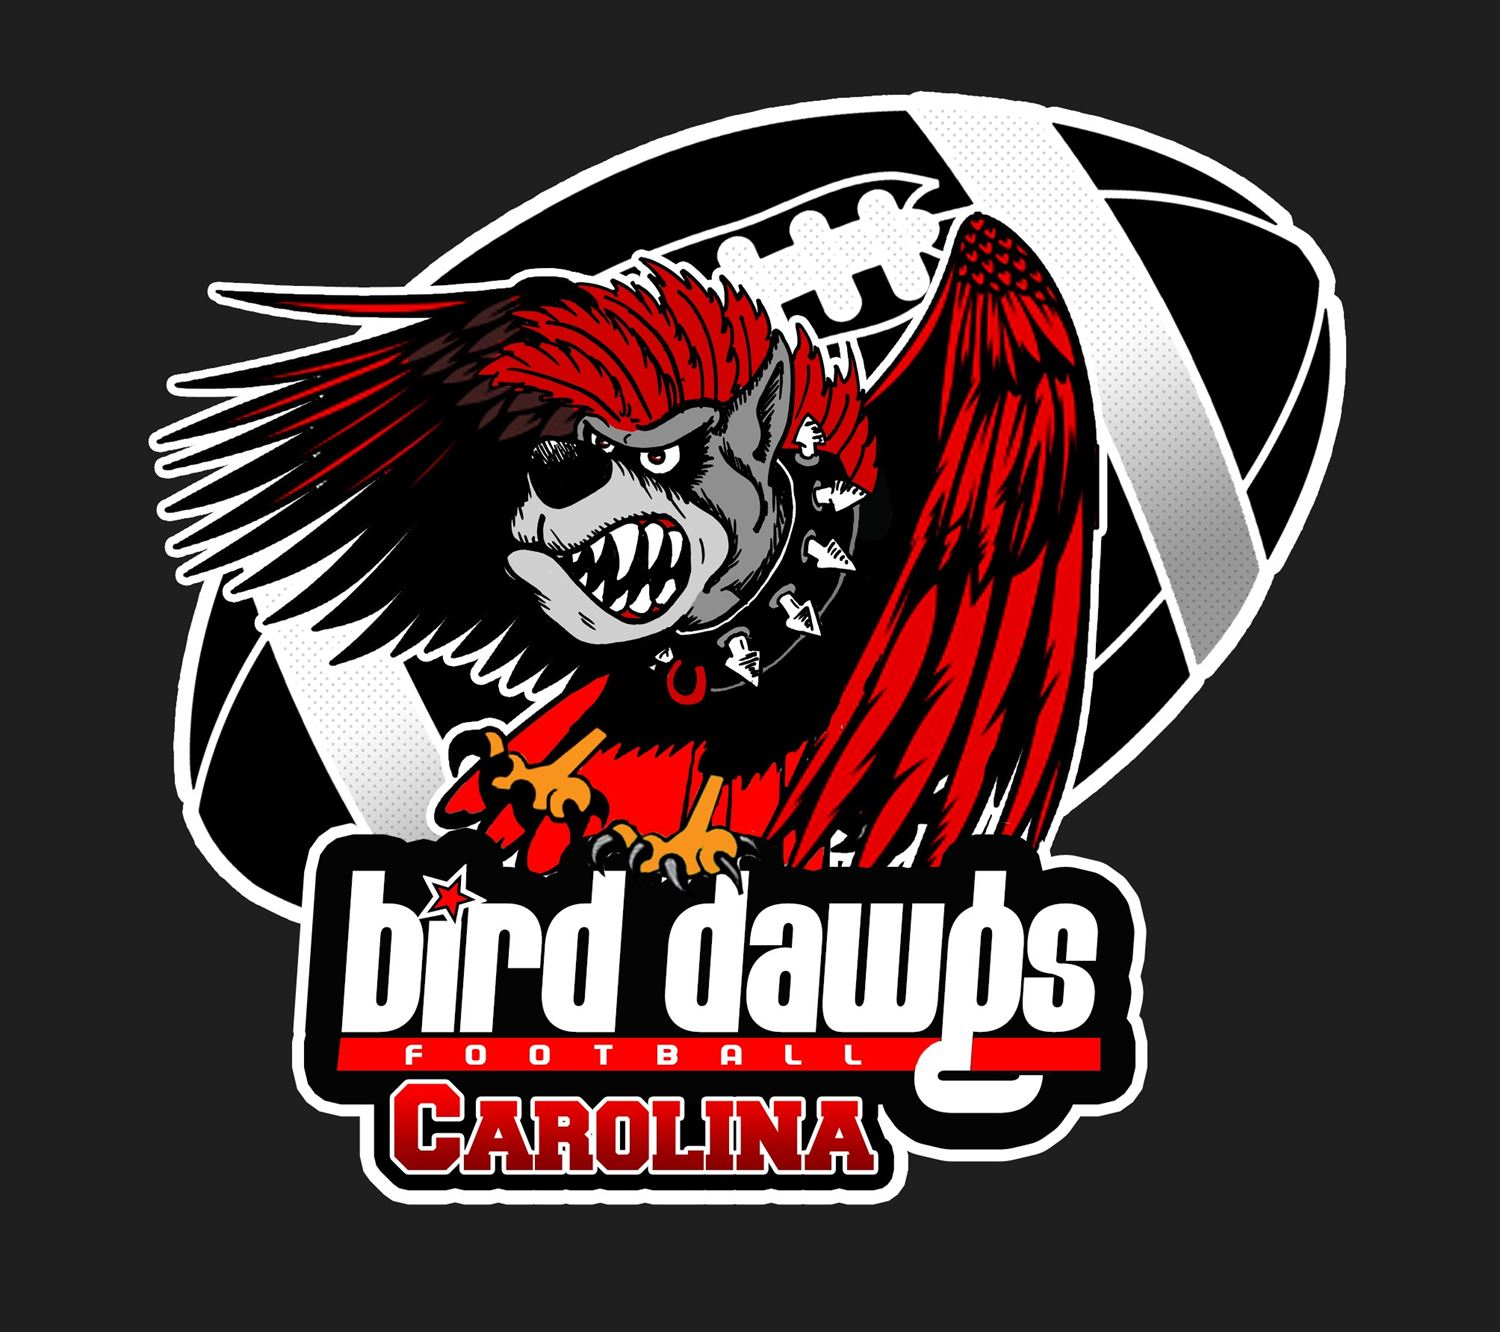 Carolina Bird Dawgs - 14U